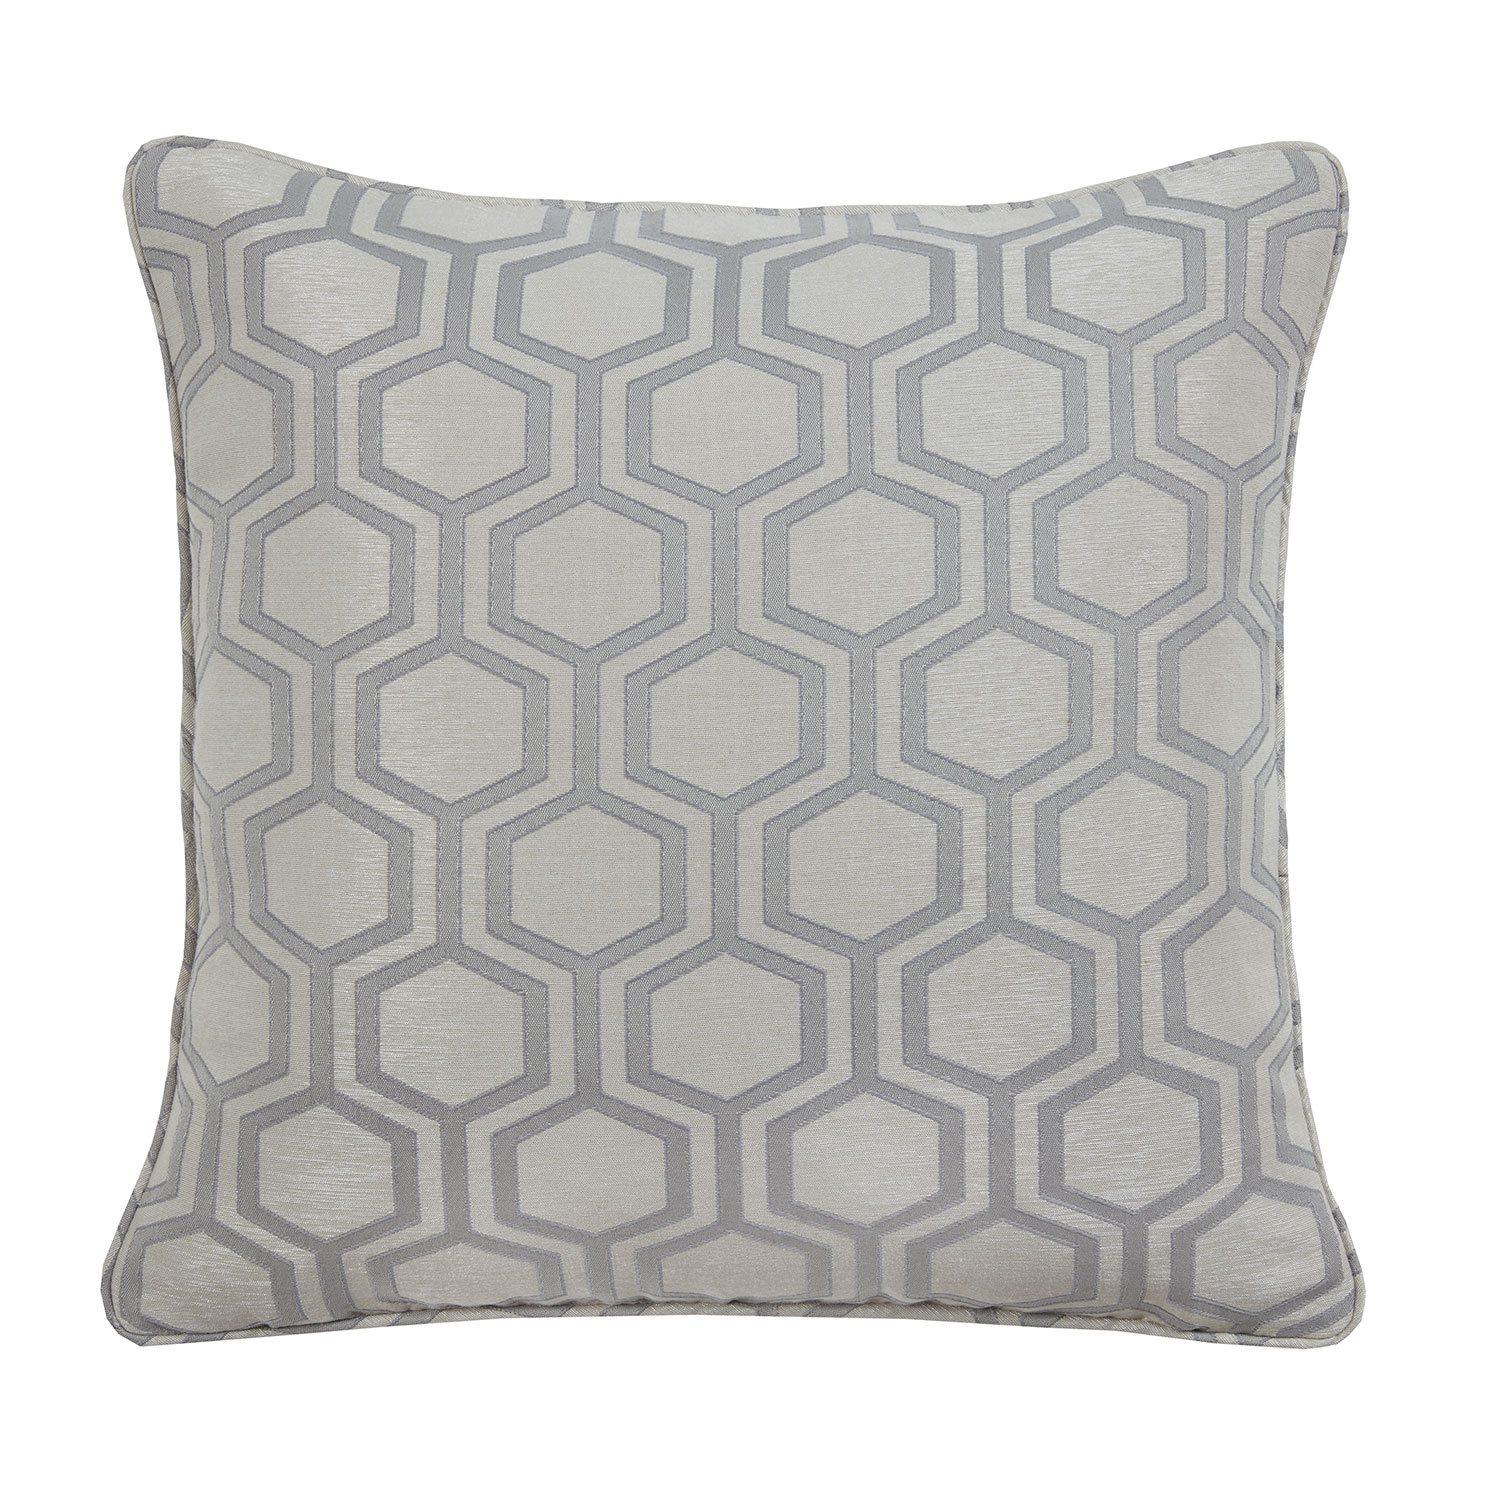 Stockists of Aurora Silver Geometric Luxury Filled Square Cushion